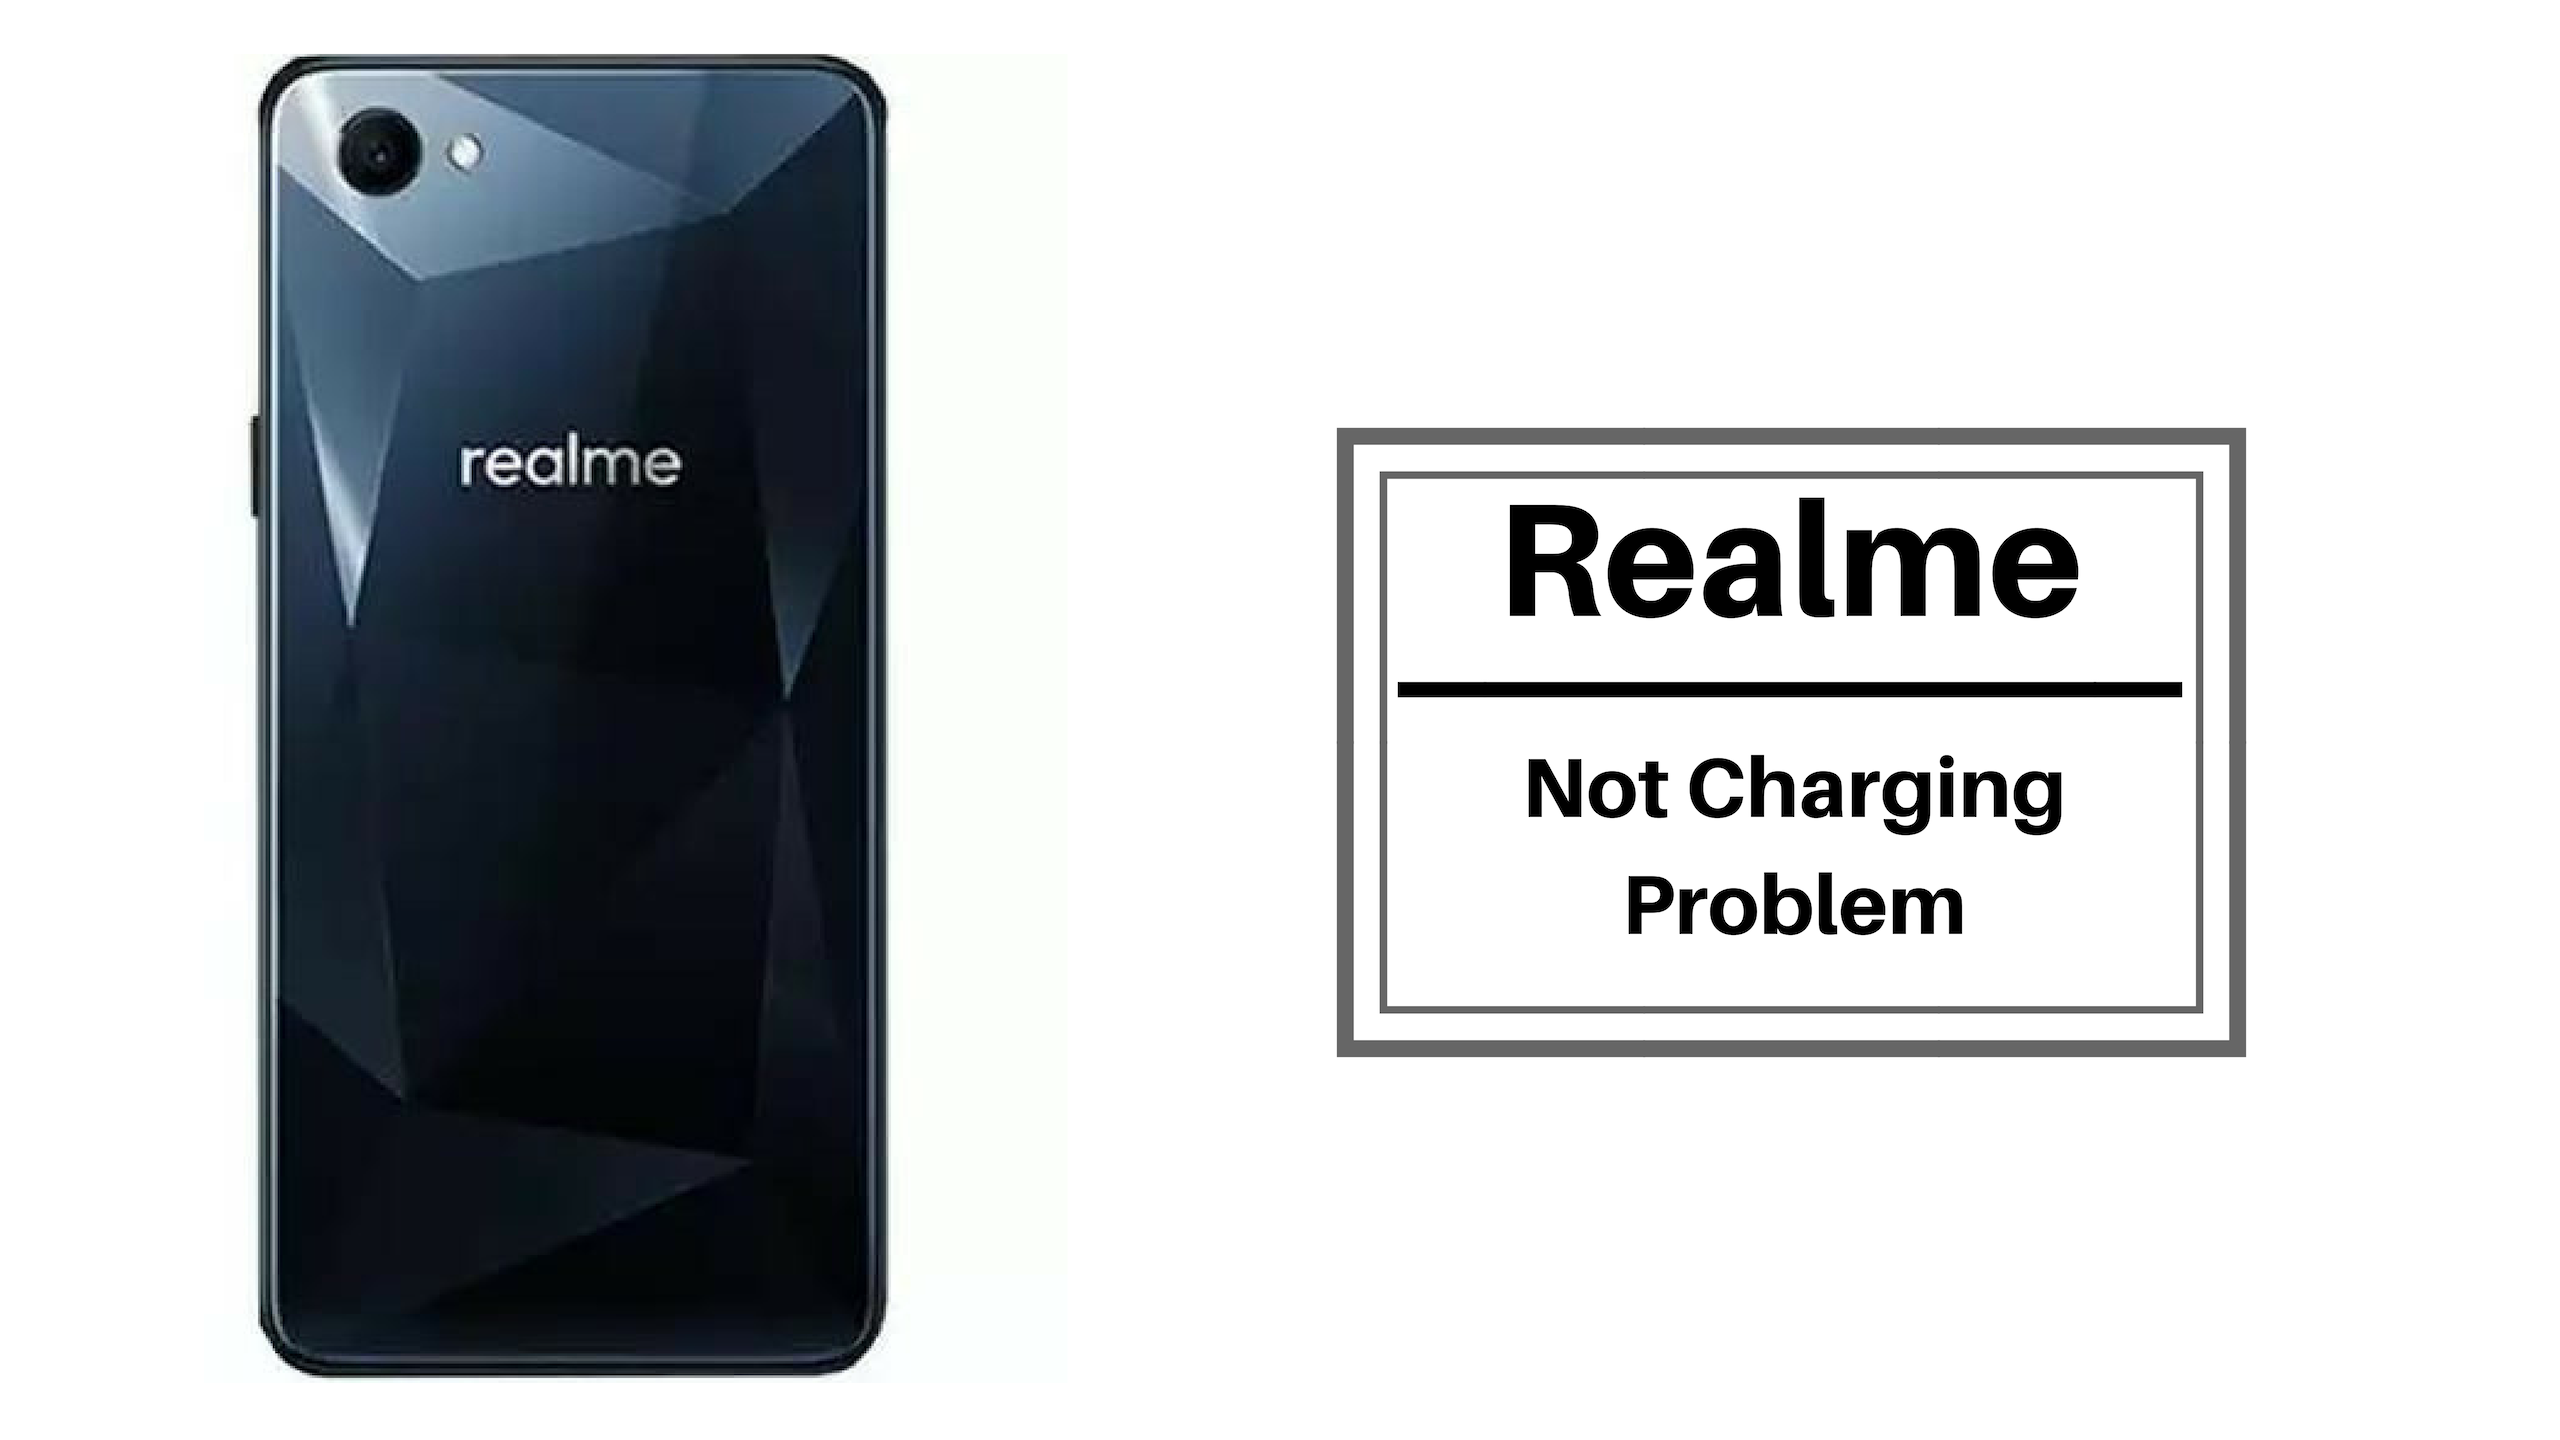 How To Fix the Realme Not Charging Problem [Troubleshoot]